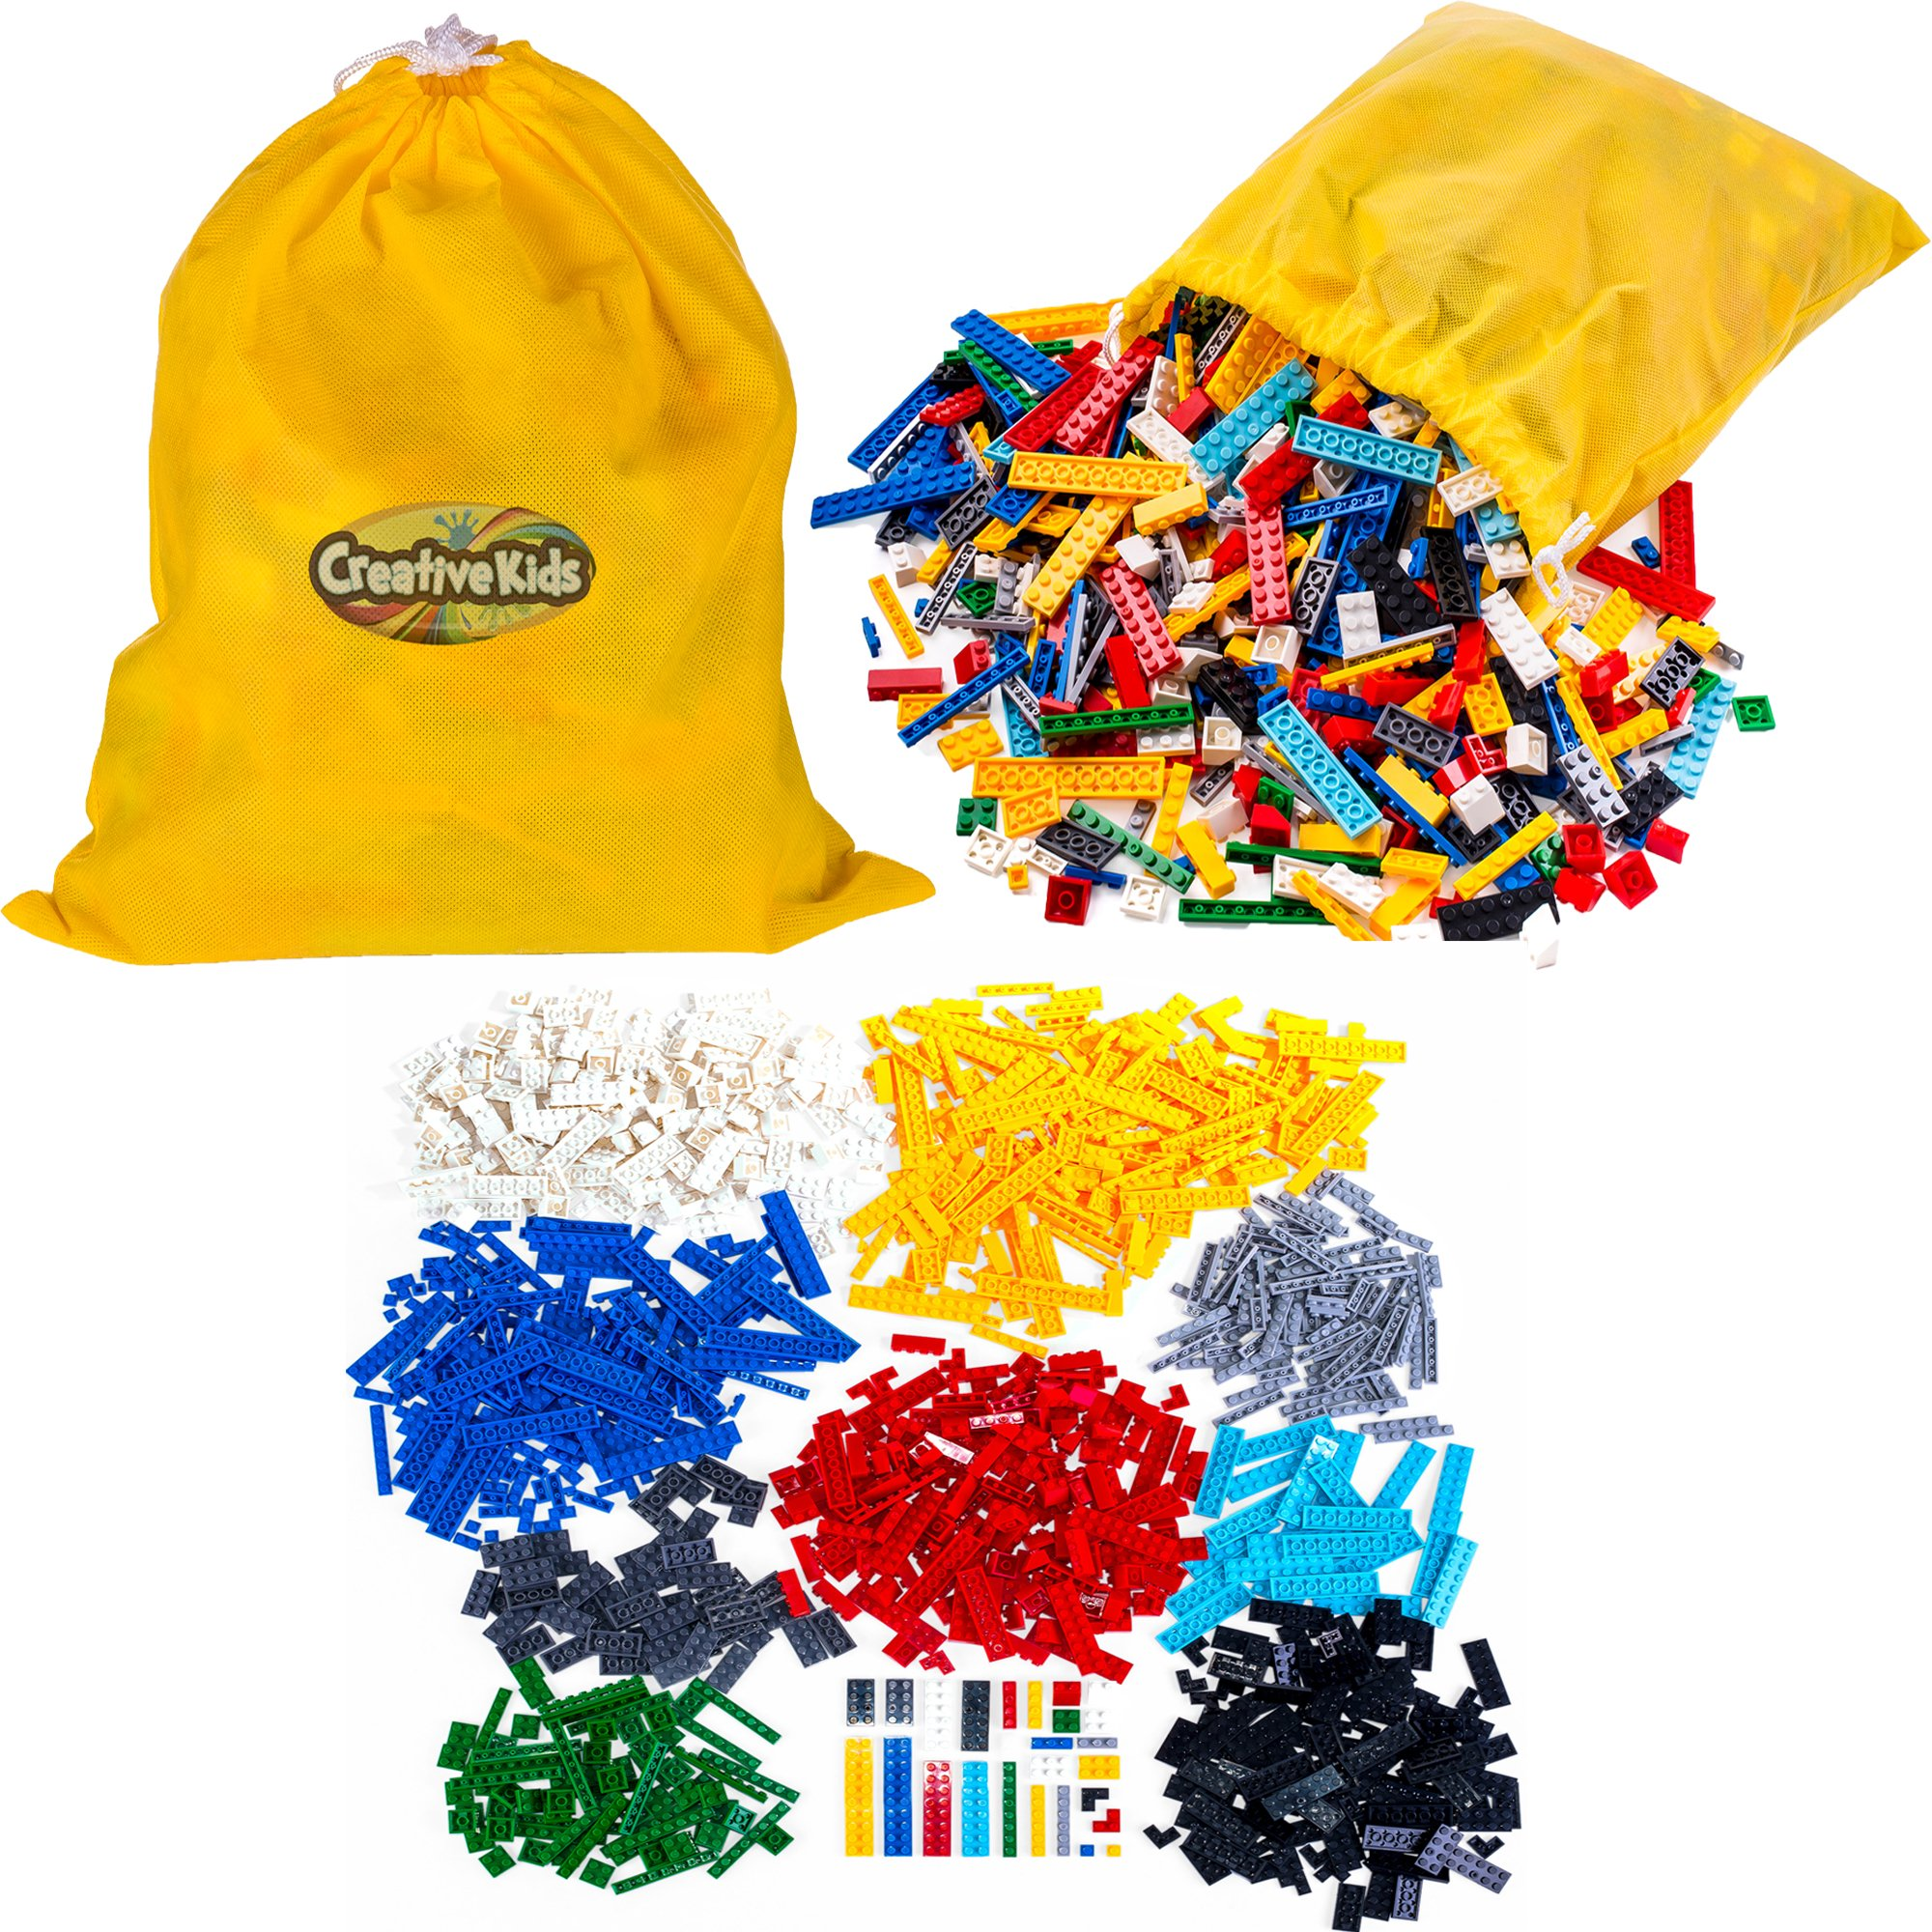 Creative Kids Building Blocks Set for Kids & Children - 1200 Assorted Bricks - 14 Different Shapes, Assorted Colors & Sizes, Storage Bag, CE Certified & Non-Toxic - Ages 6 +